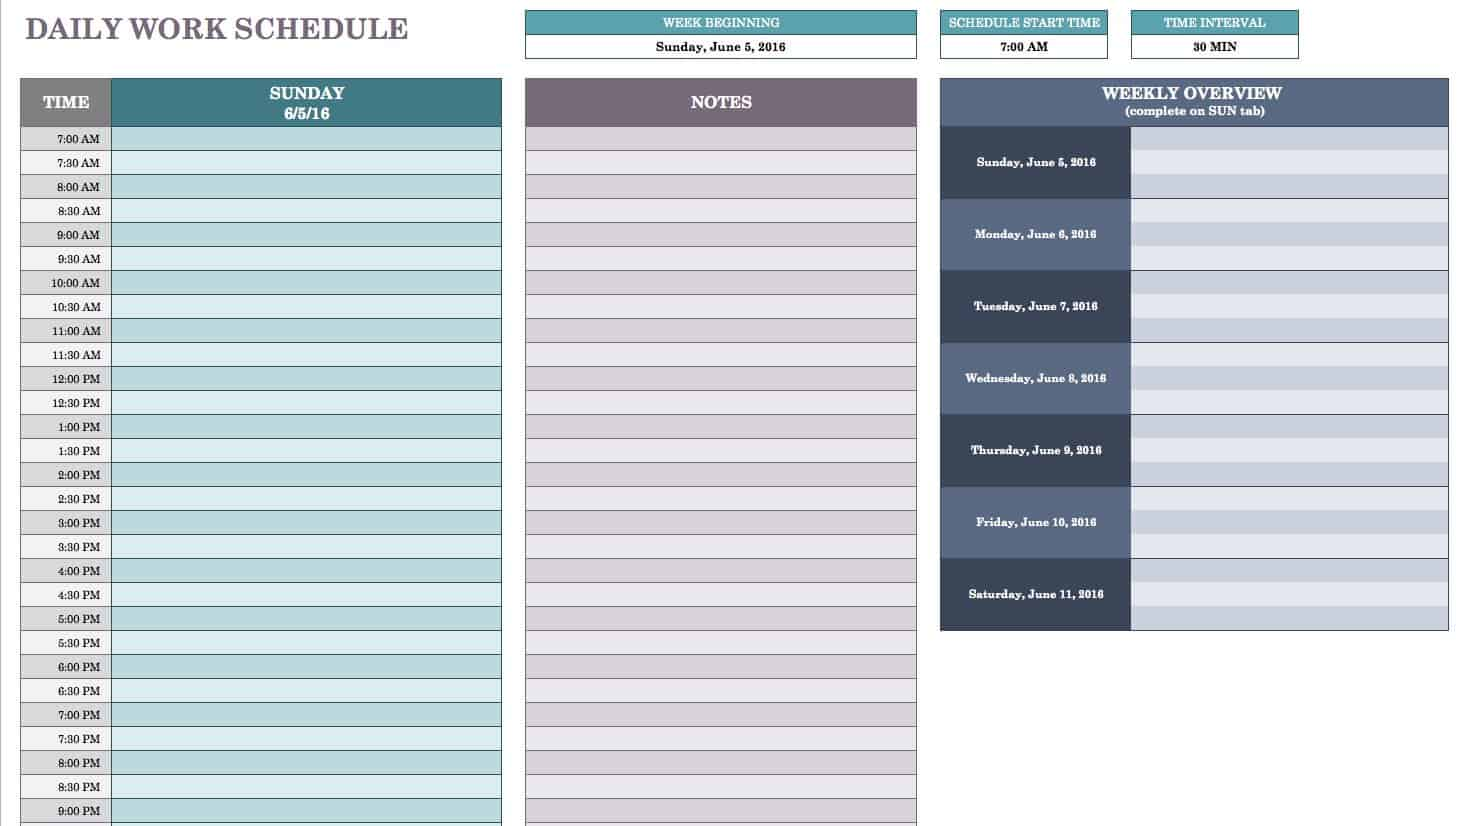 Free daily schedule templates for excel smartsheet daily work schedule template maxwellsz